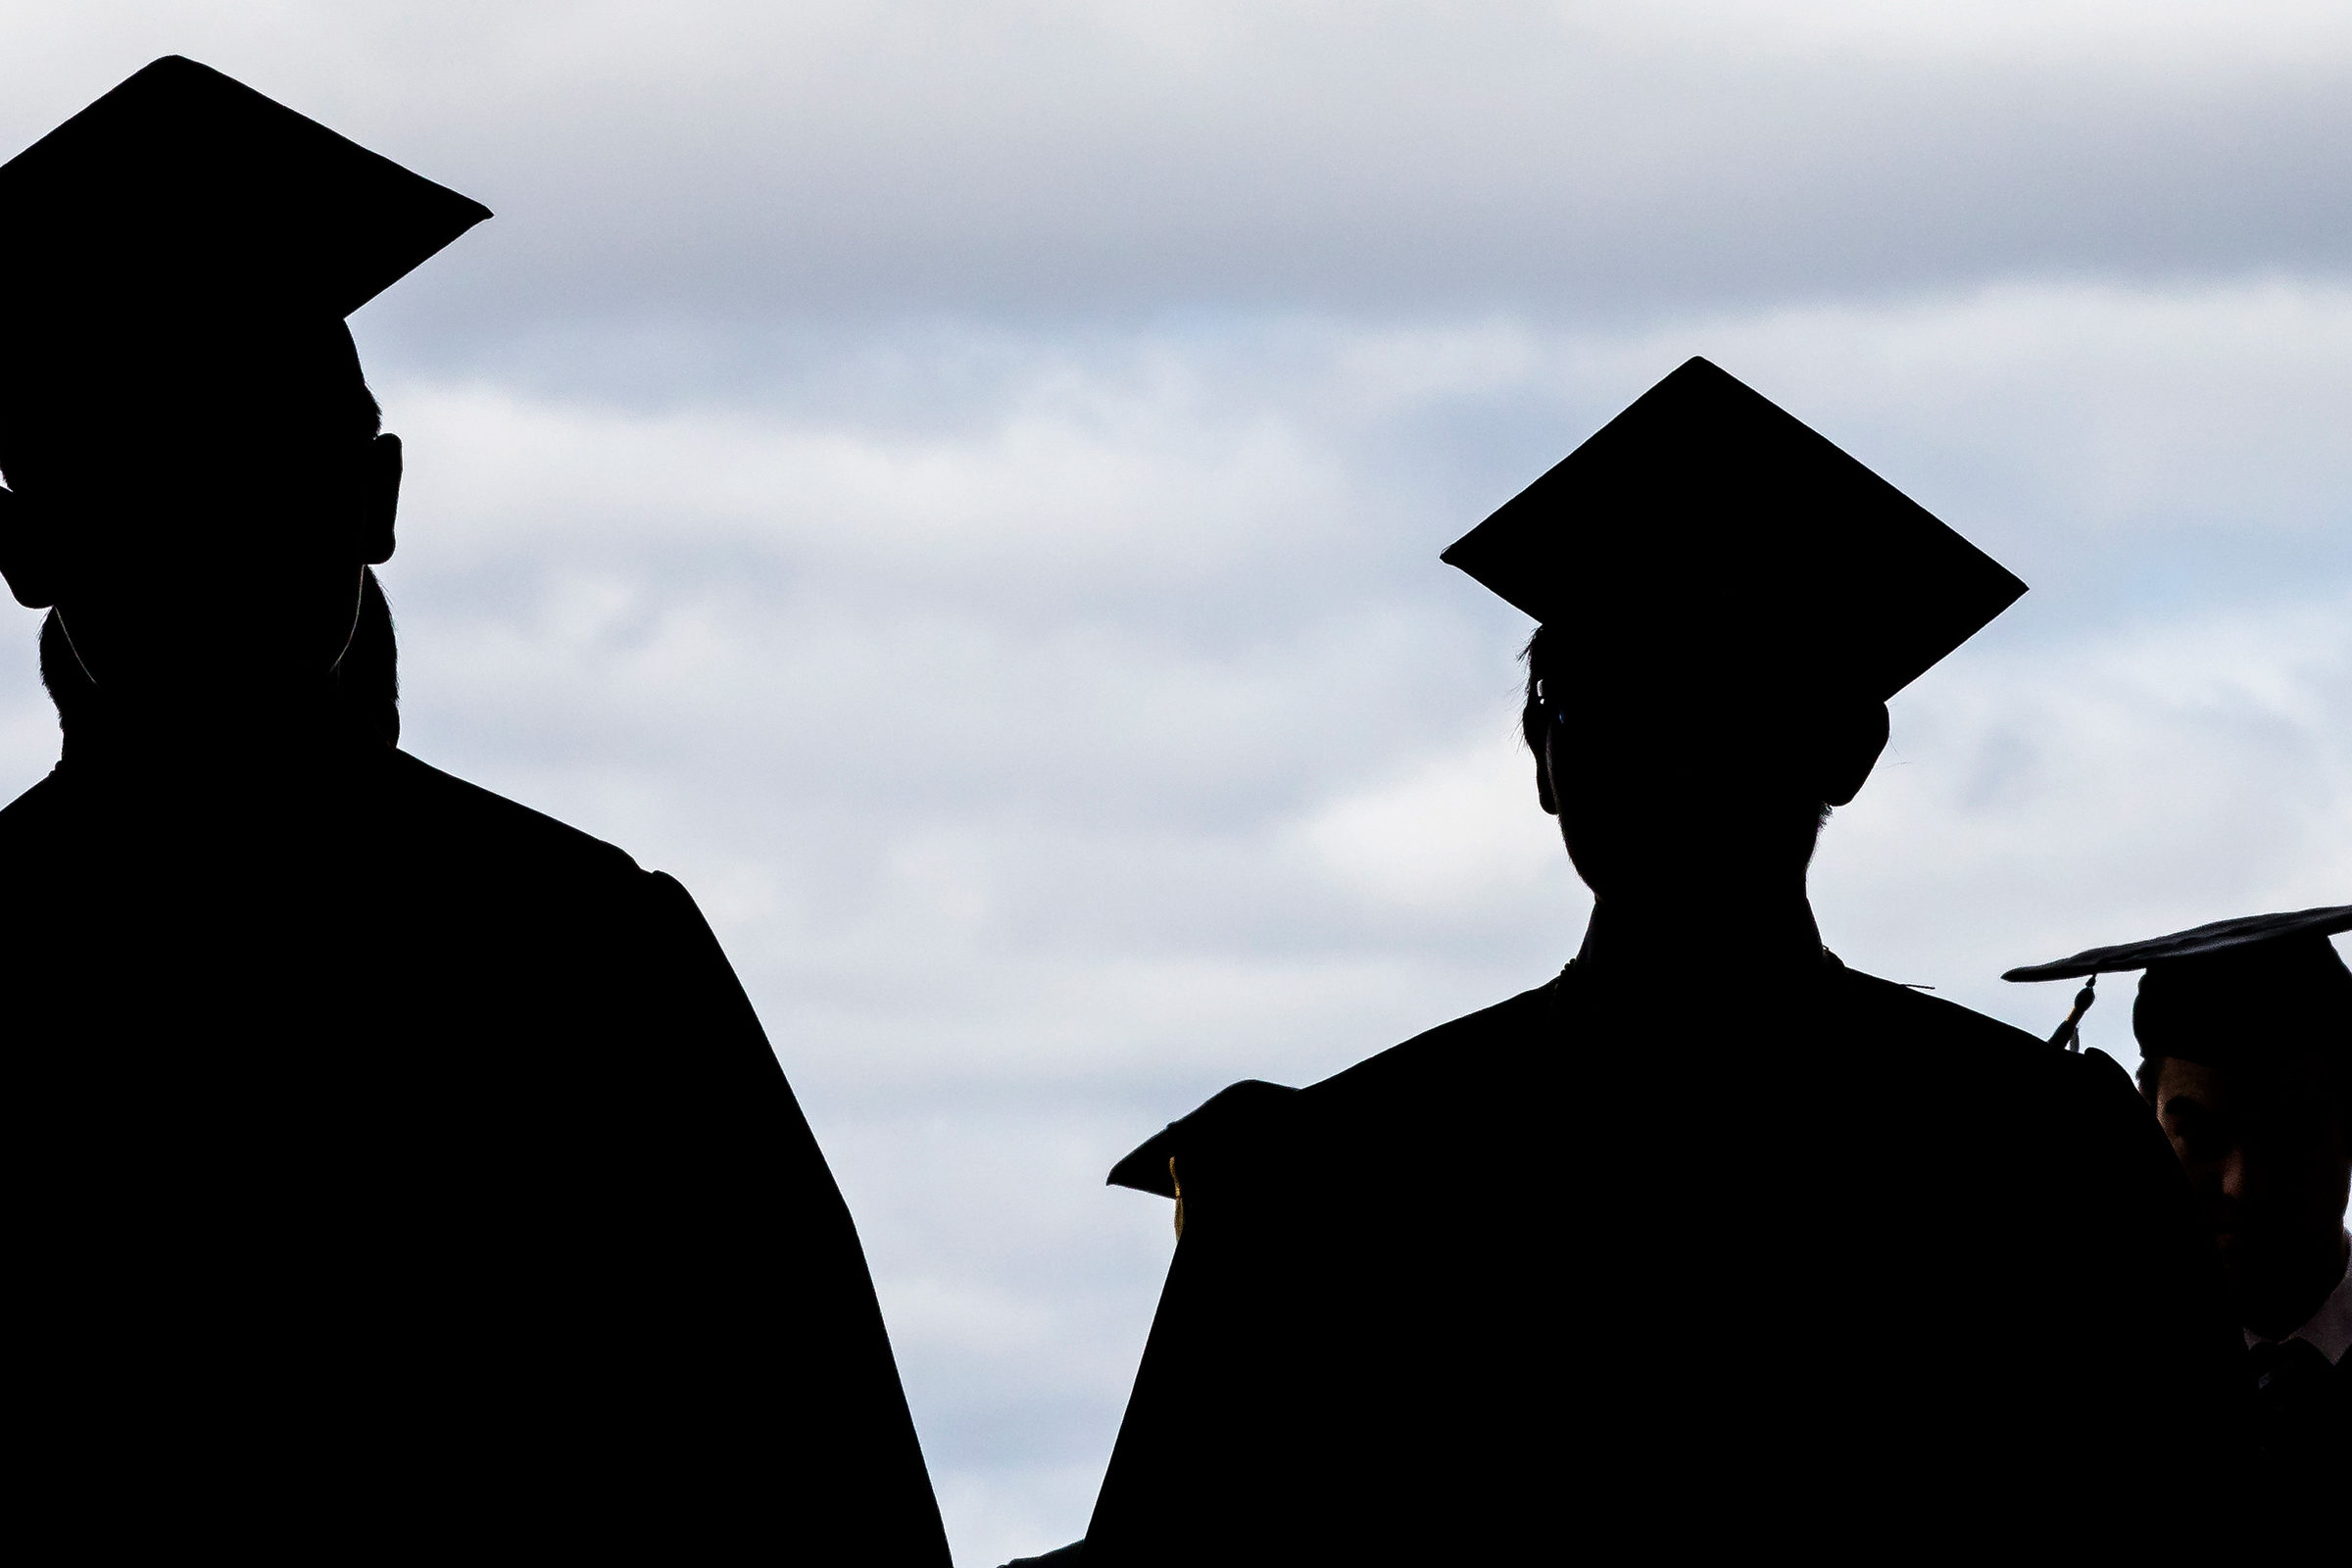 Silhouette of graduates in caps and gowns